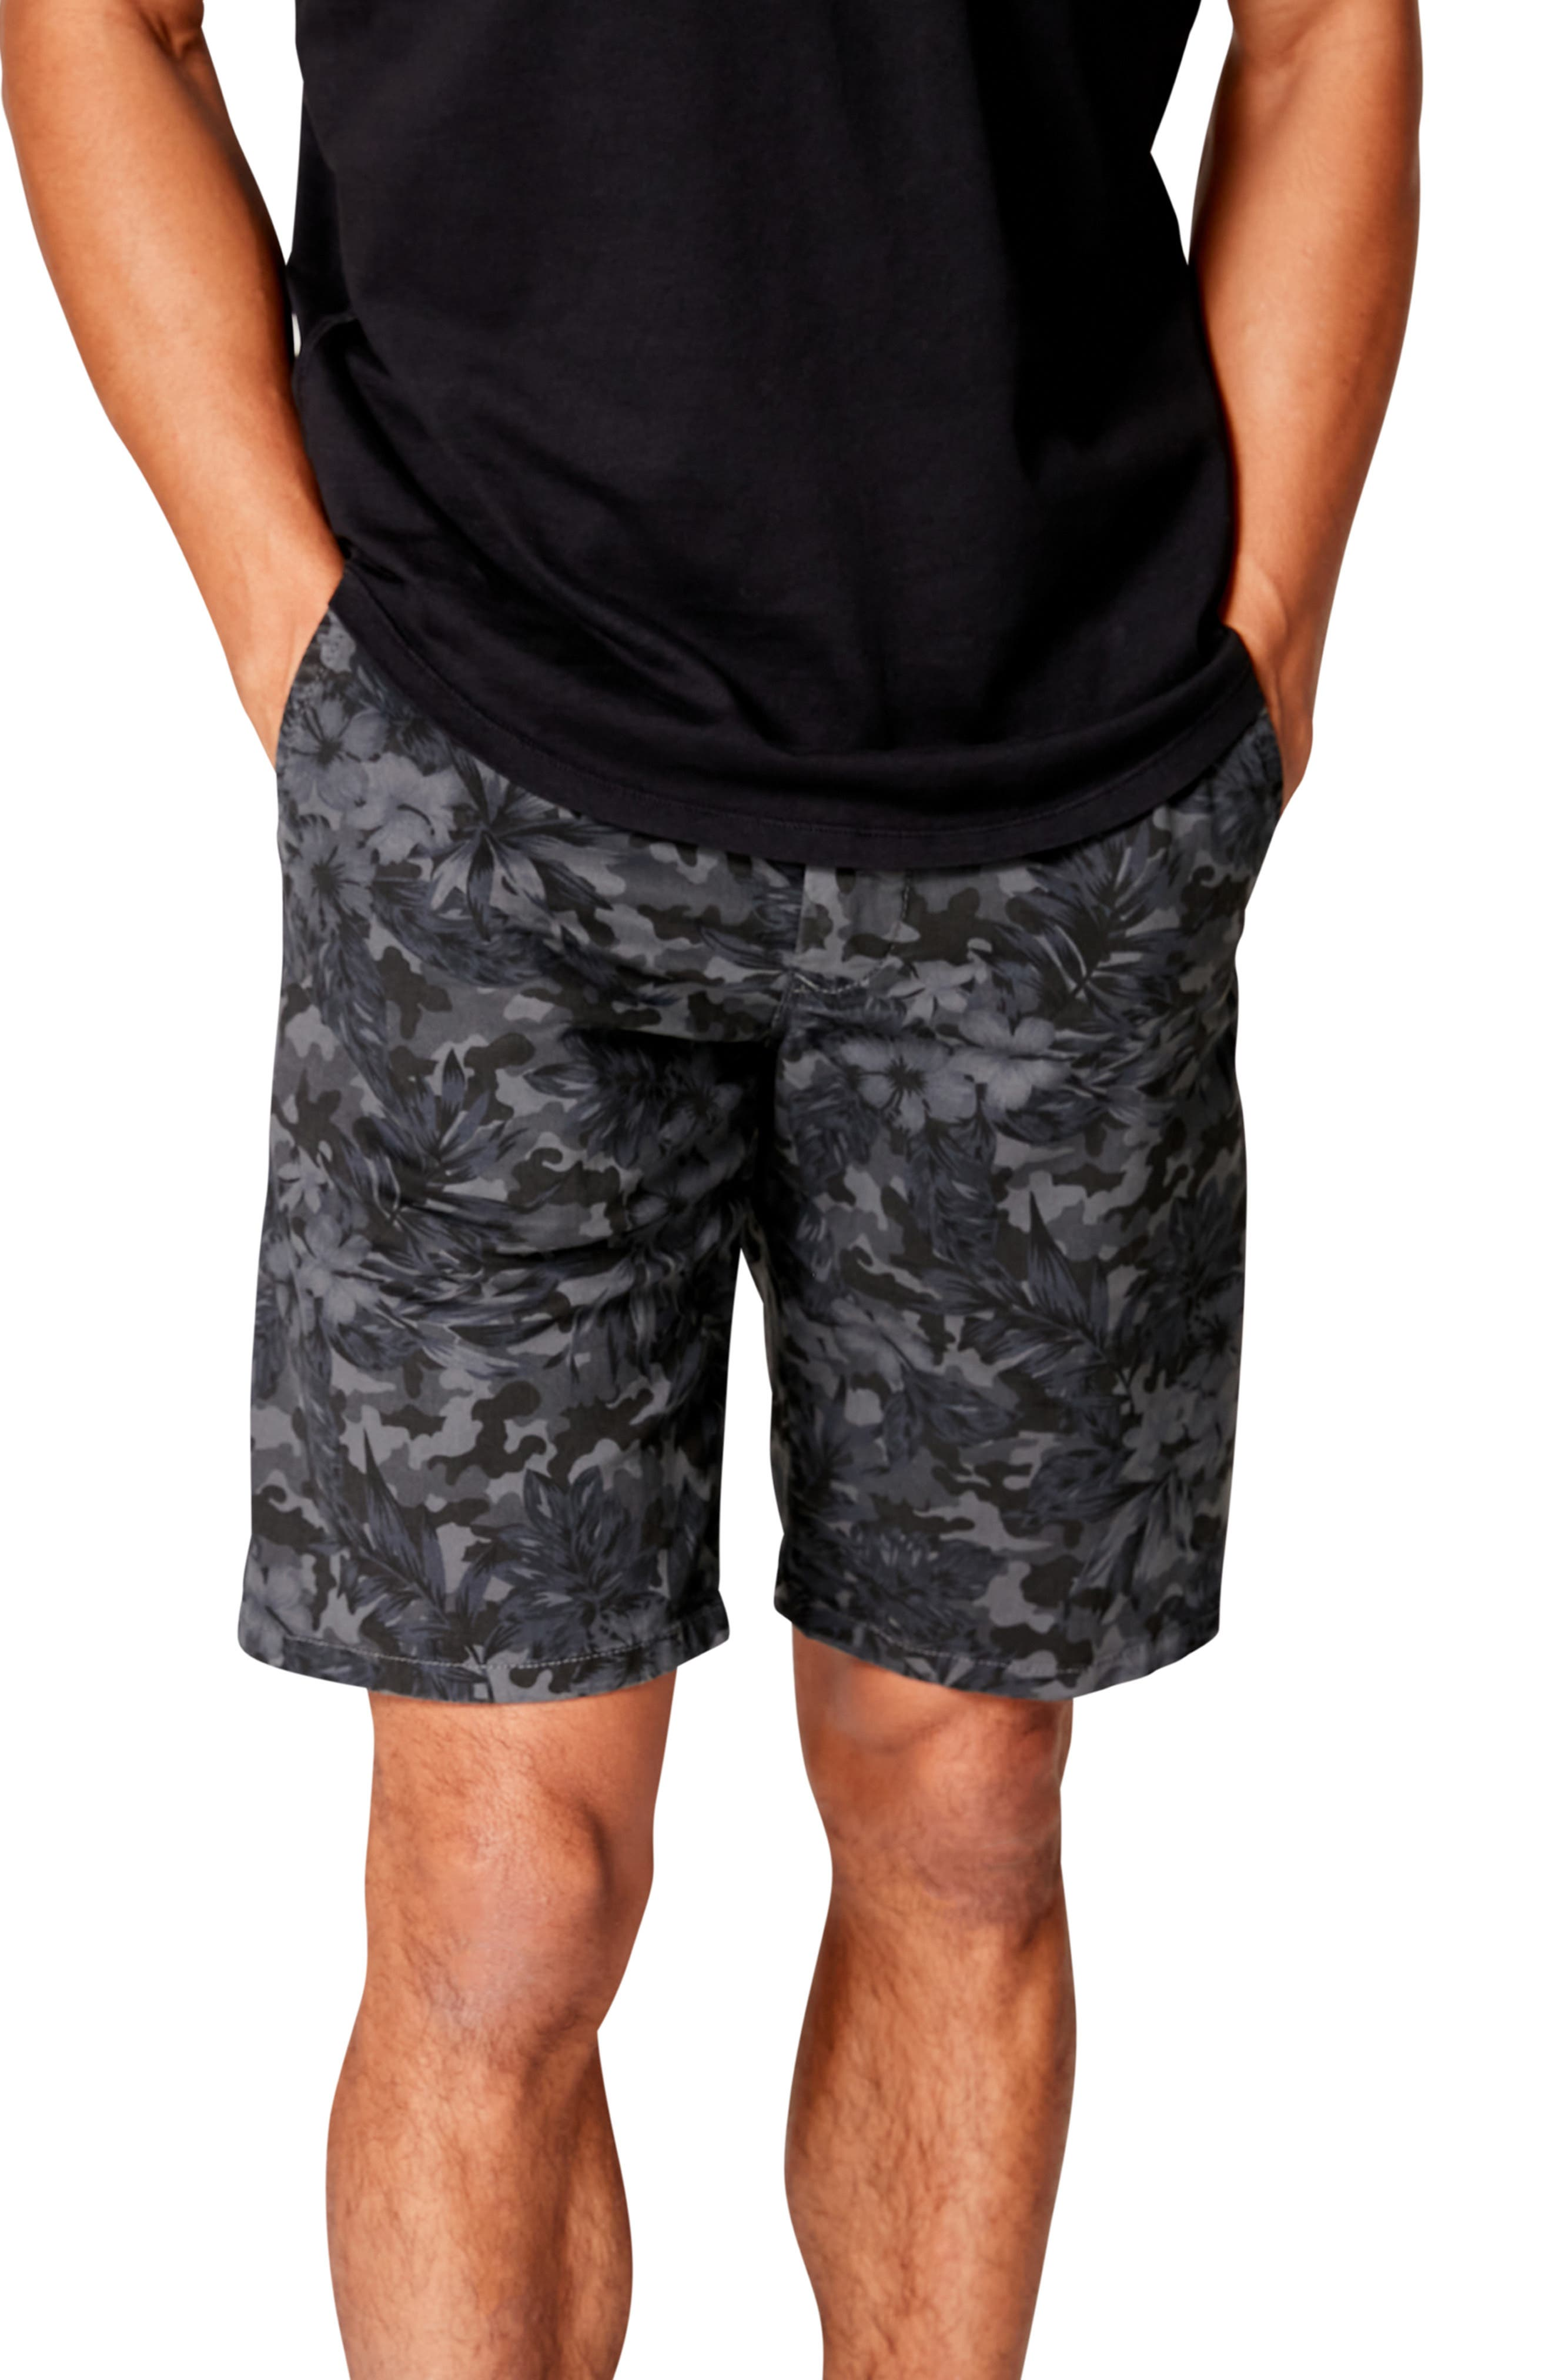 Mottled camo and tropical flowers bring the best of both trends to stretch-cotton shorts styled for comfort with angled side seams to give you easier movement. Style Name: Good Man Brand Monaco Slim Fit Camo Floral Flat Front Shorts. Style Number: 6020234. Available in stores.